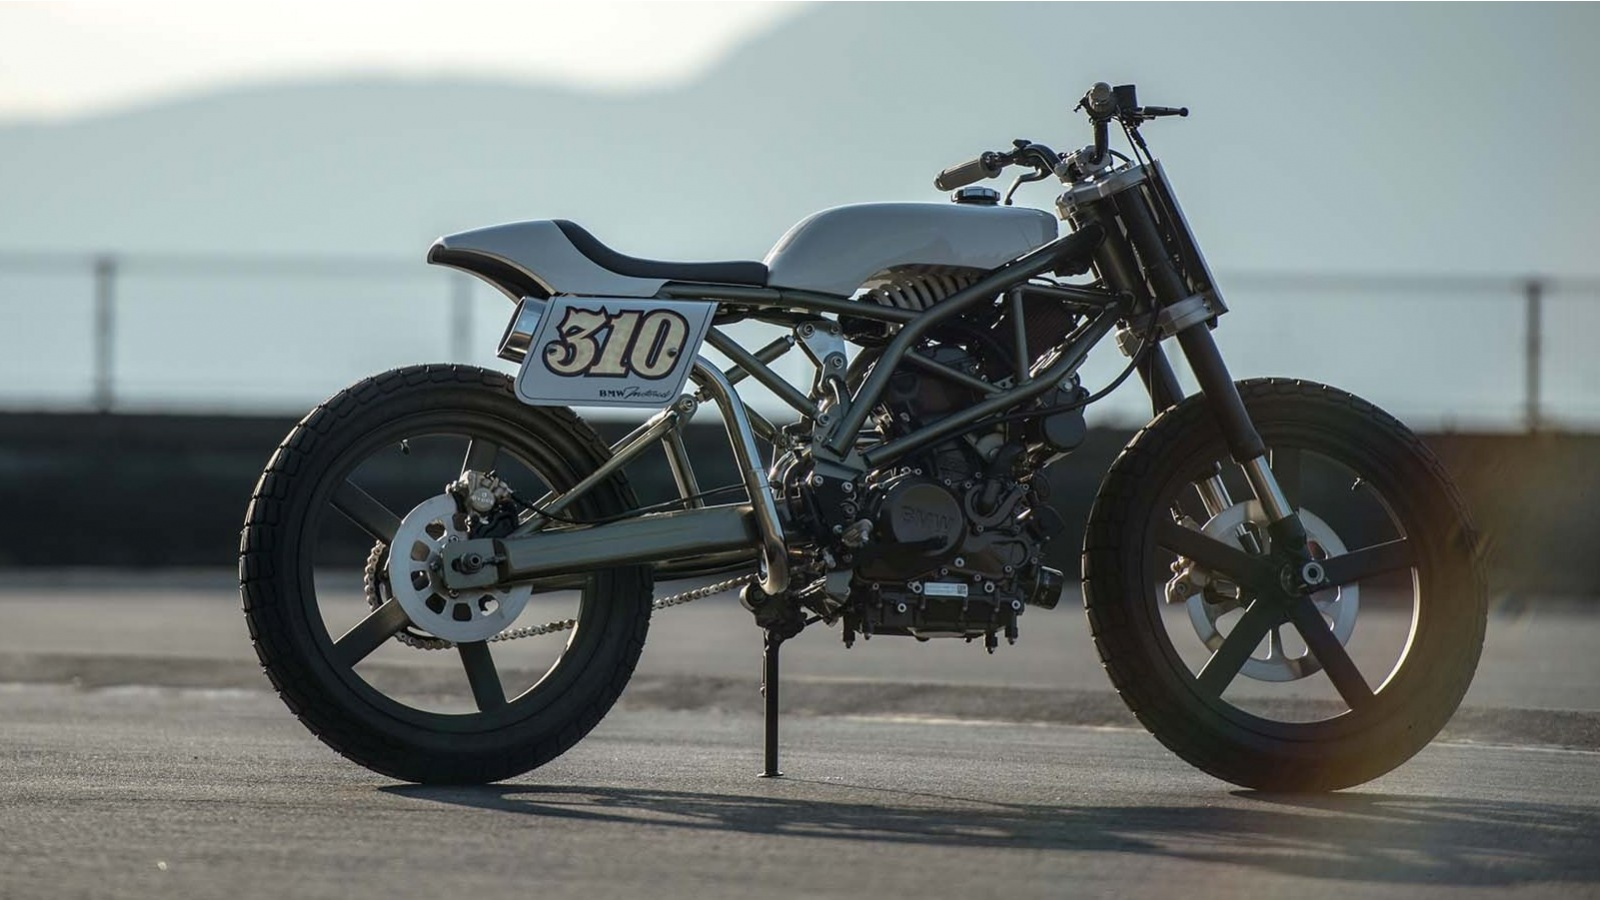 BMW G310R Street Tracker Motorcycles